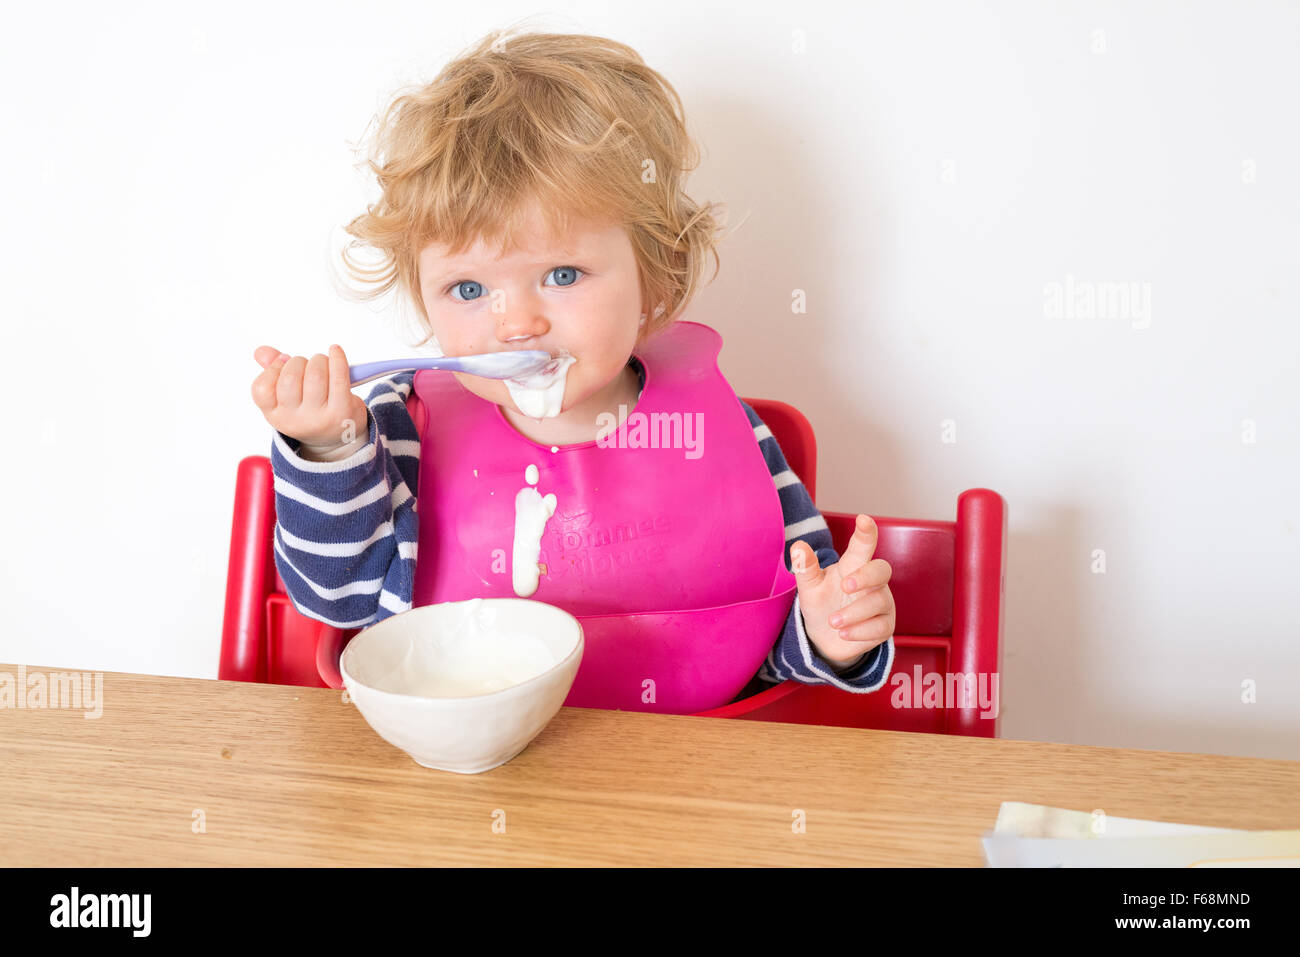 One year old baby eating yoghurt messily with a spoon, England, UK - Stock Image